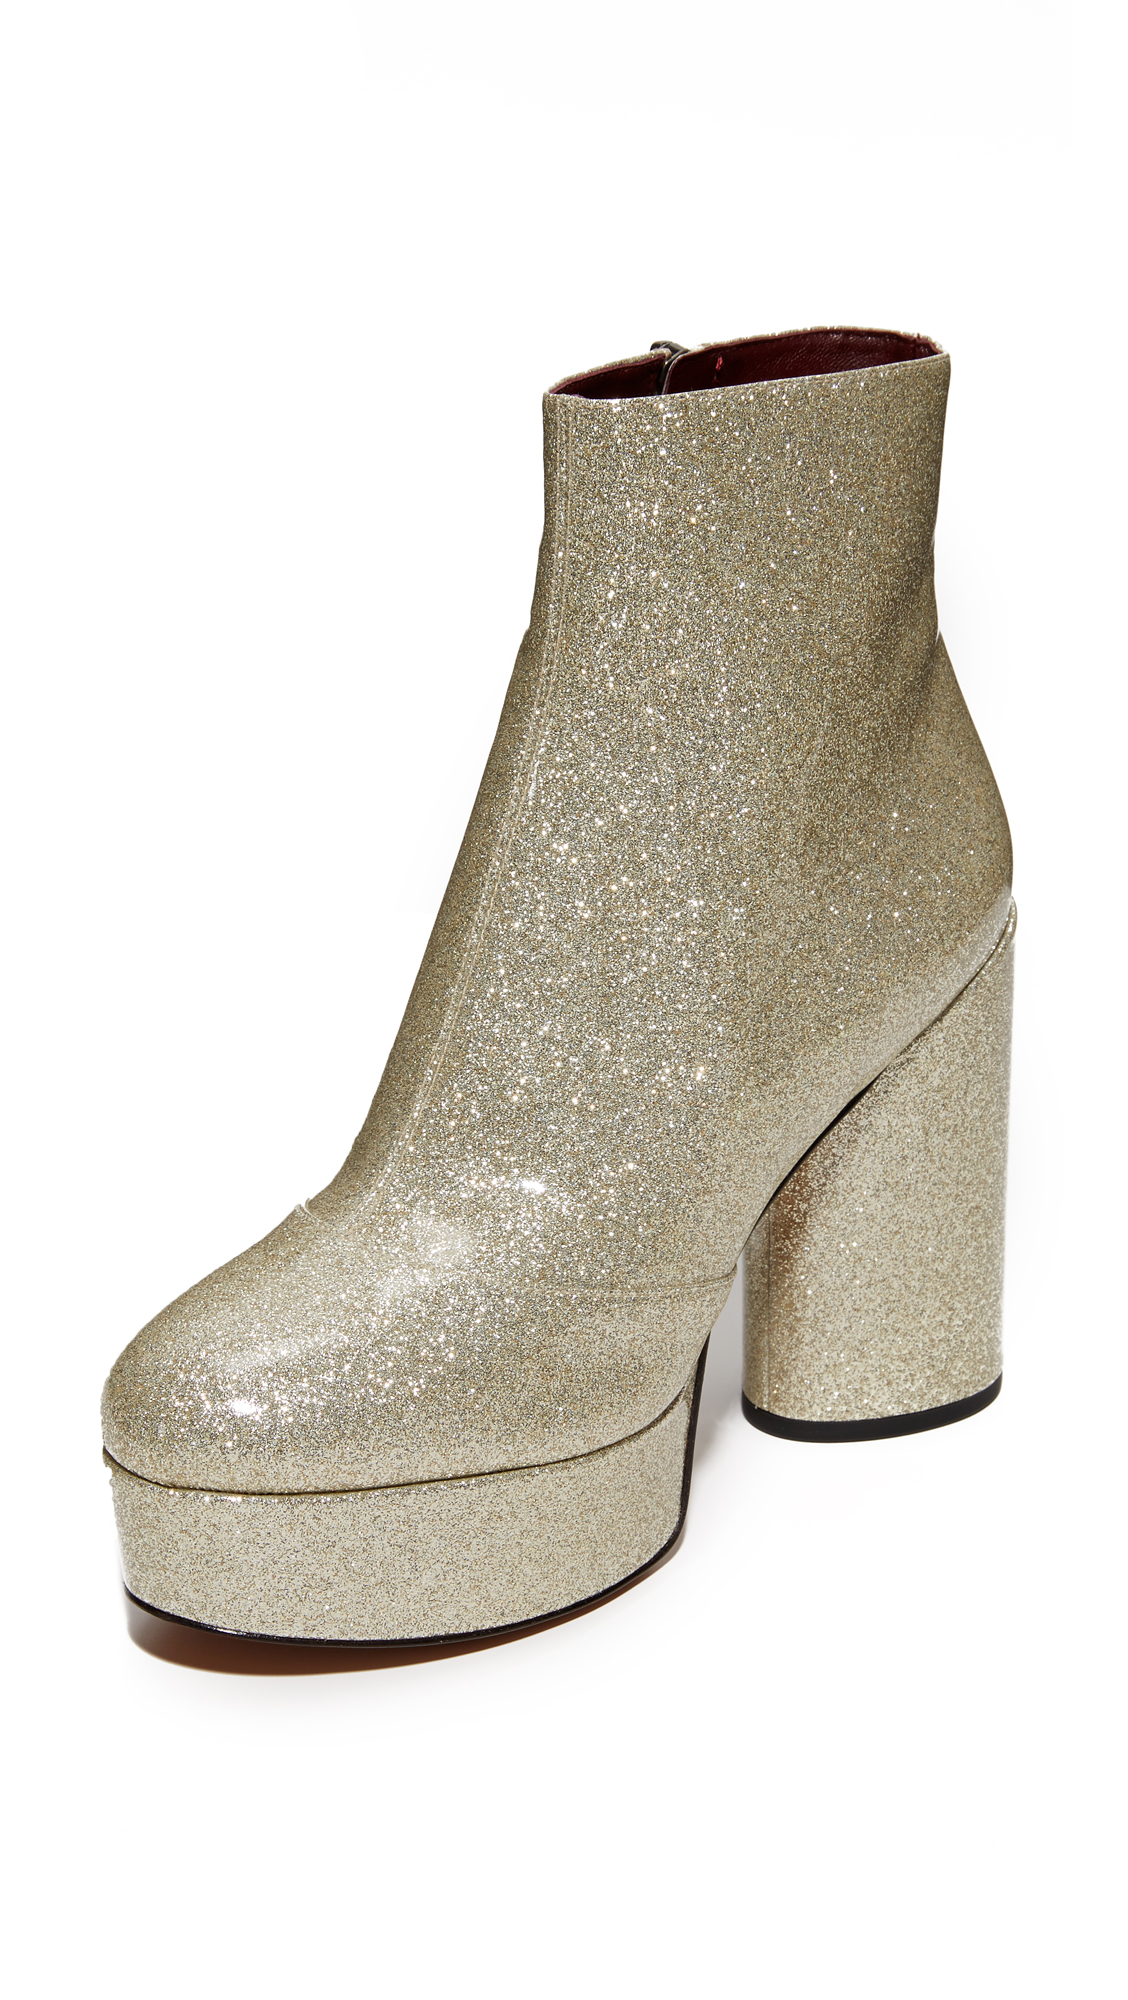 Marc Jacobs Amber Platform Boots - Diamond